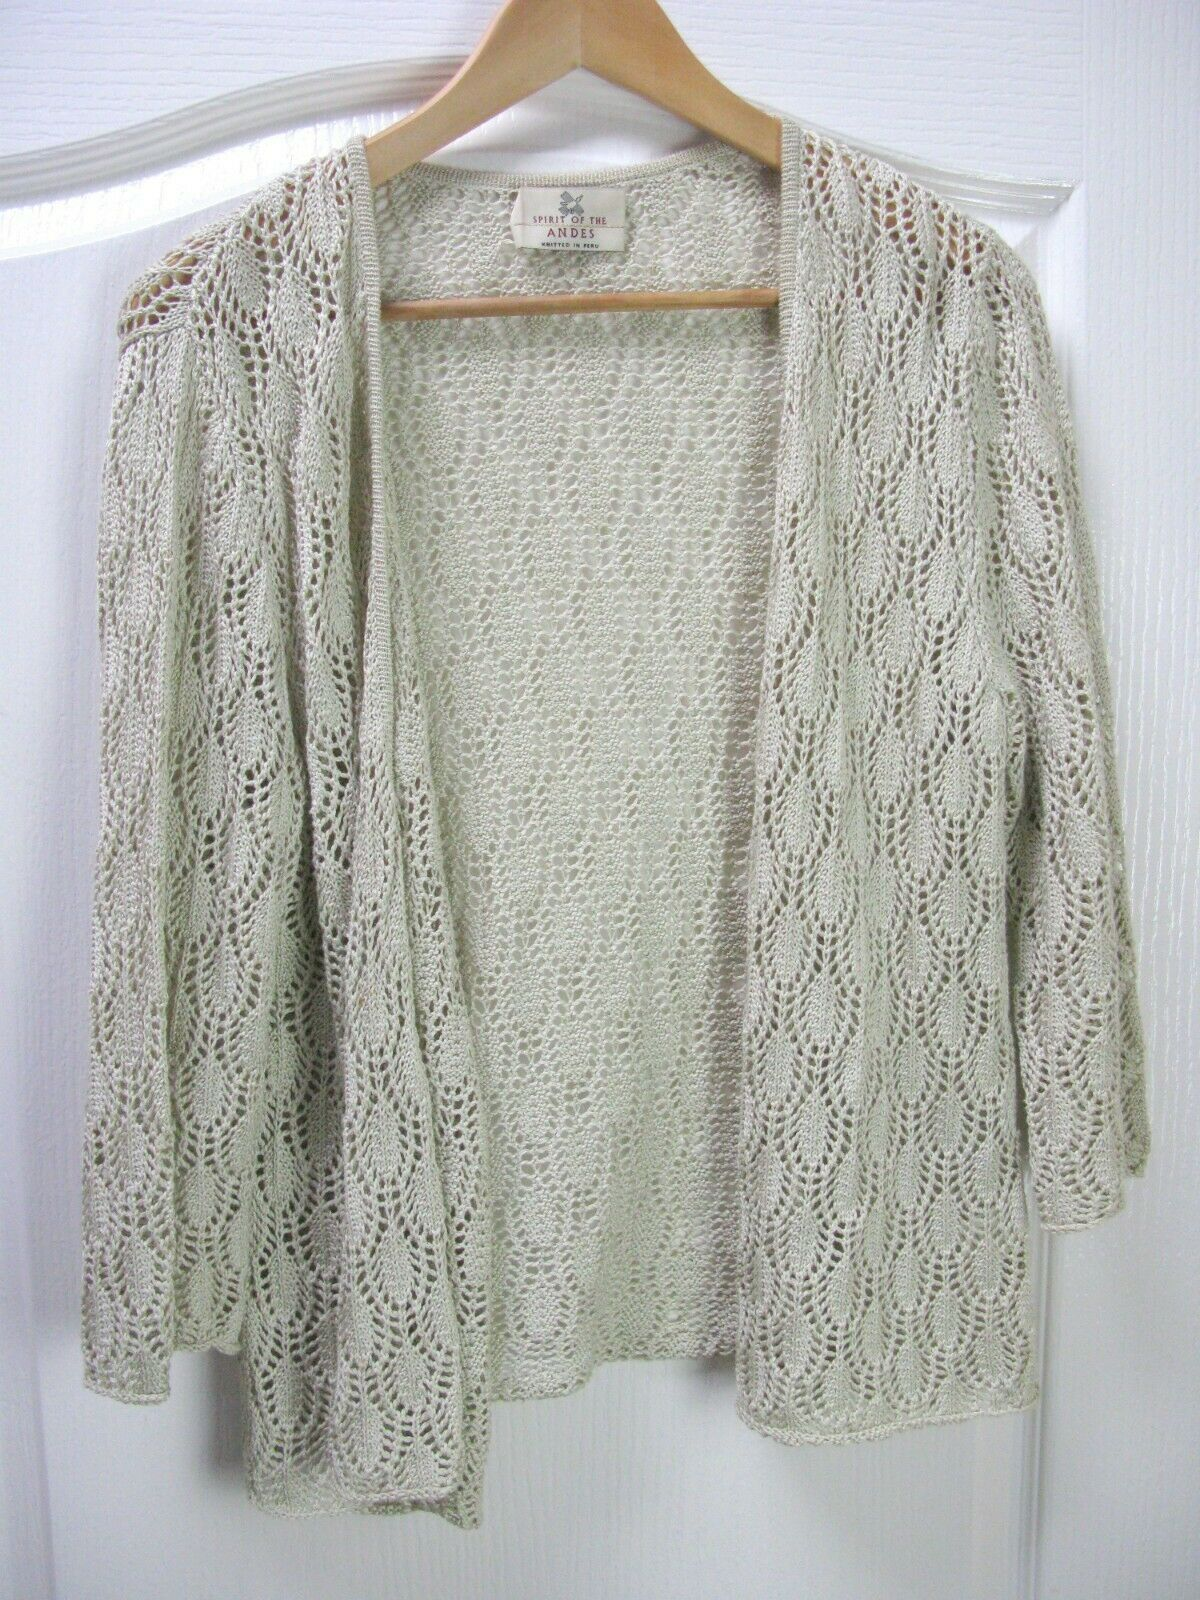 Peruvian SPIRIT OF THE ANDES Beige Crochet Cardigan Hand Knitted Peru - Medium